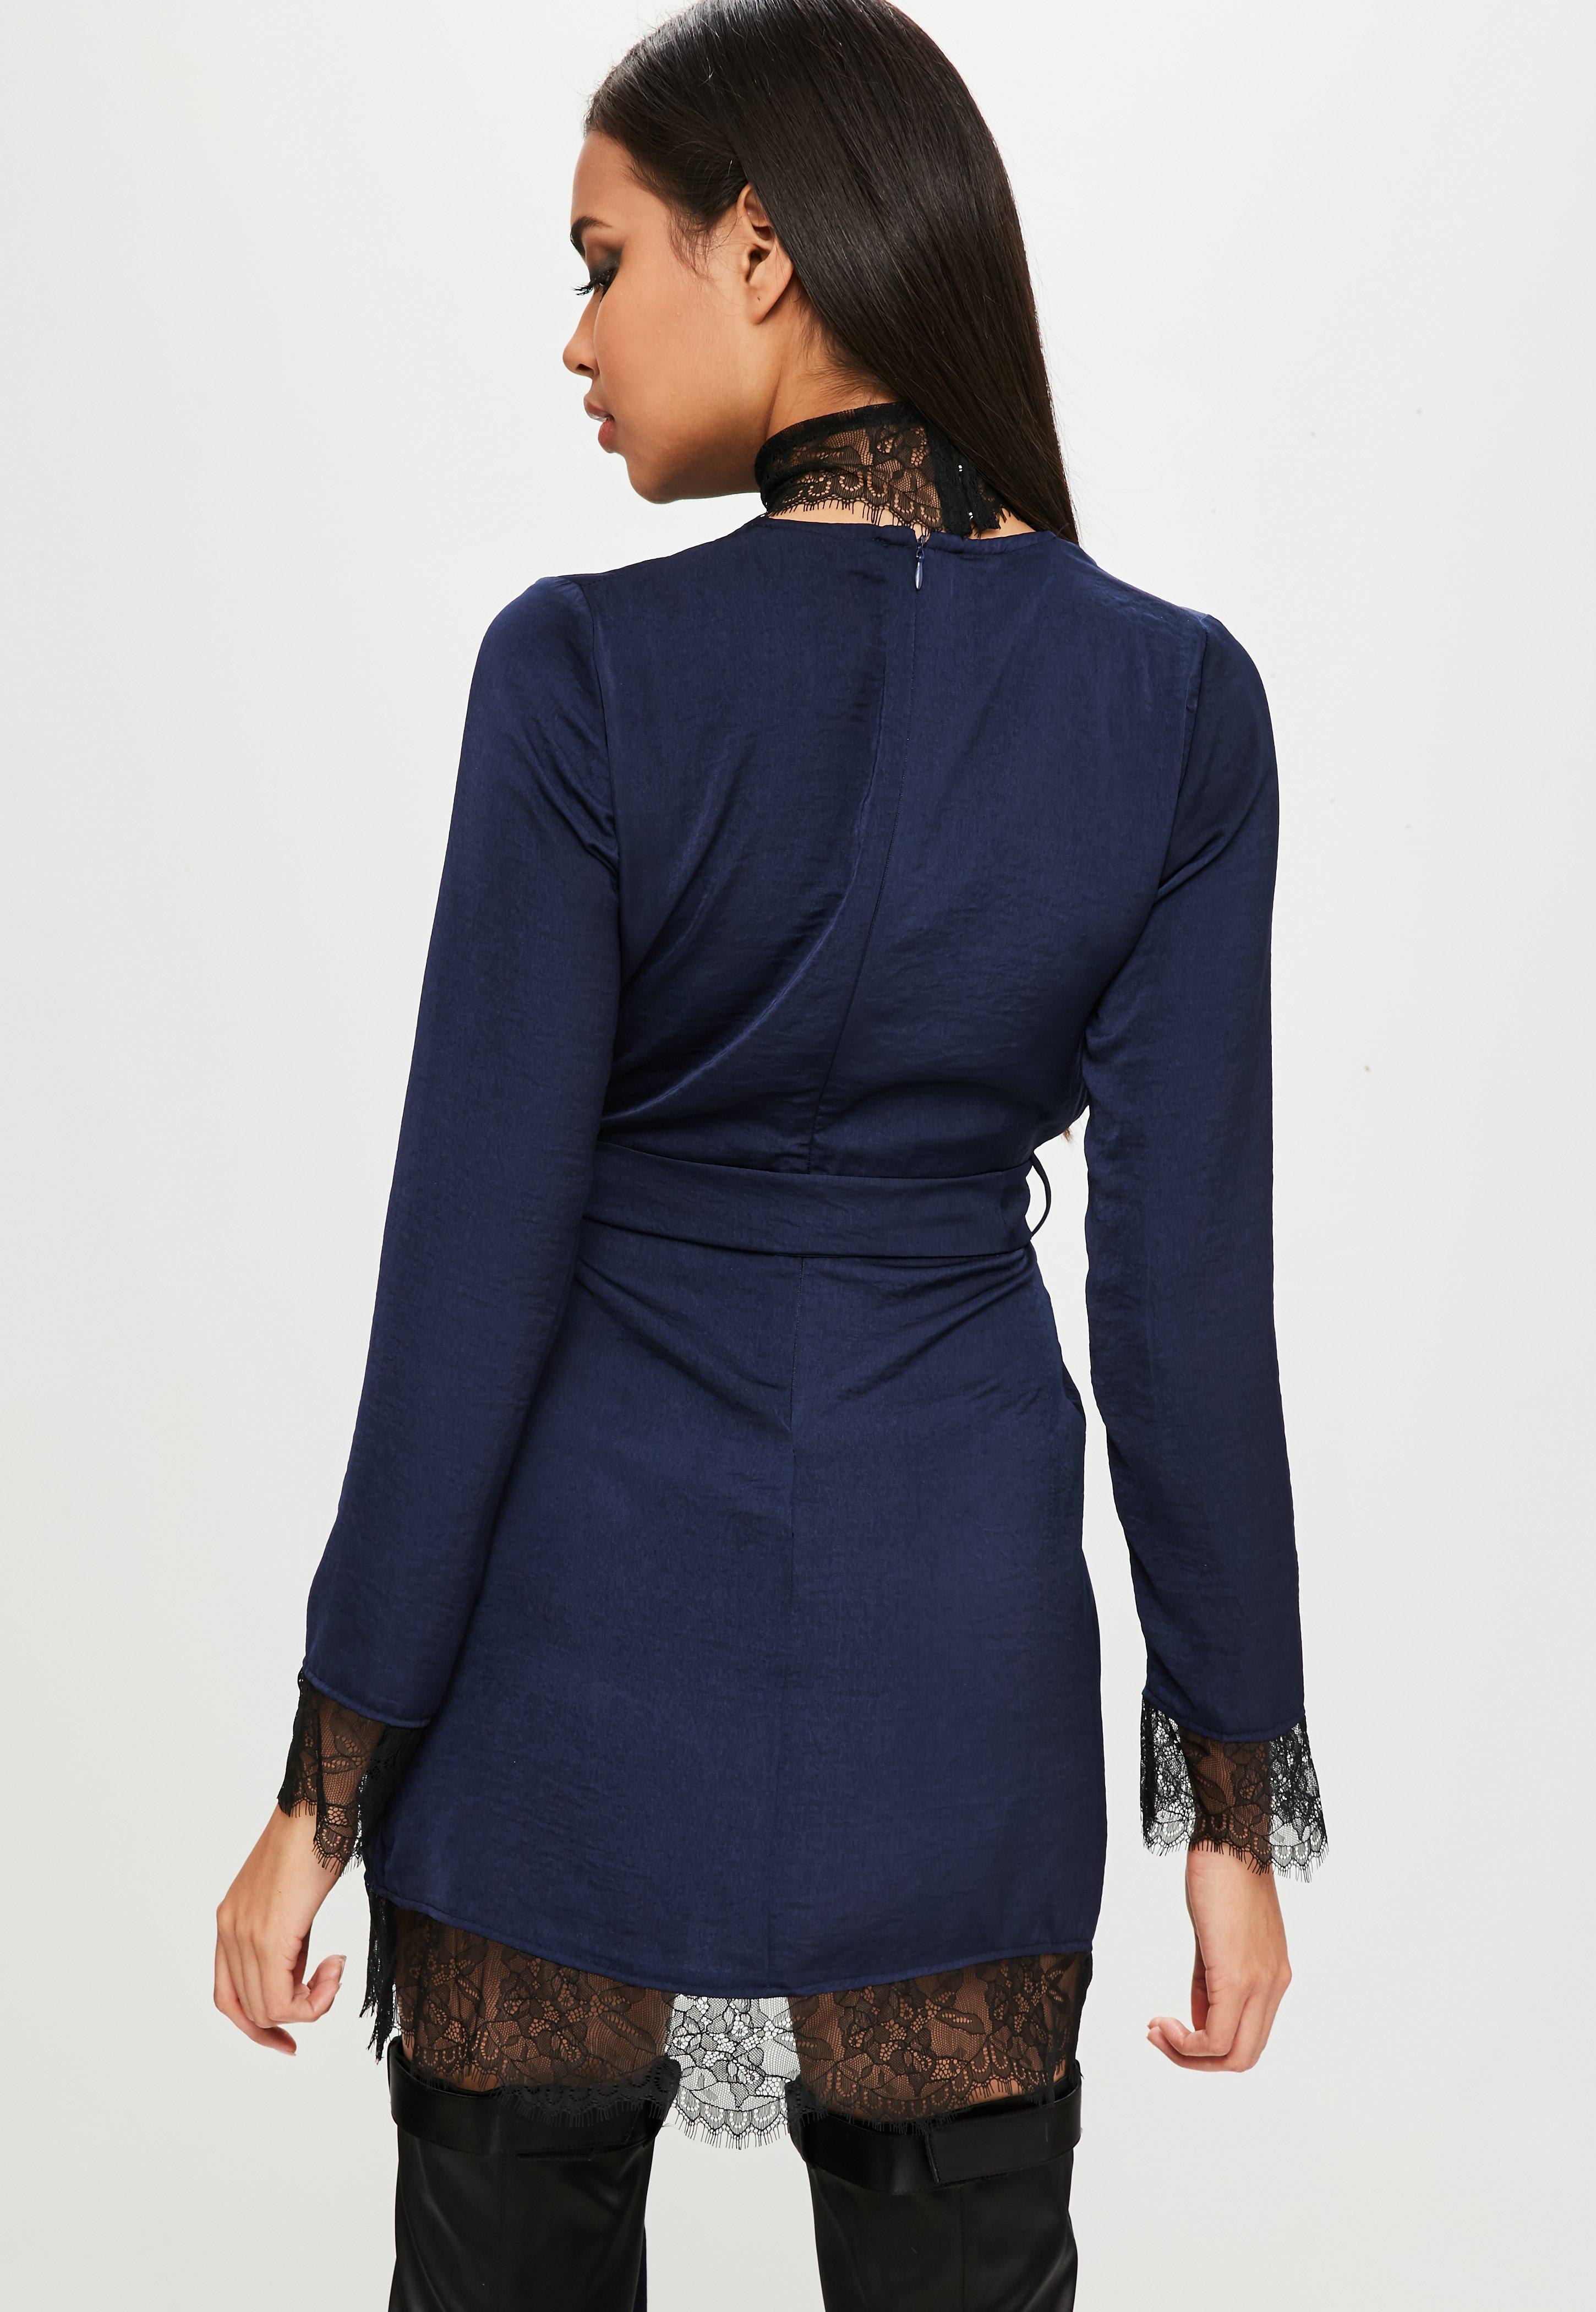 290e379b15 Lyst - Missguided Carli Bybel X Navy Satin Lace Wrap Dress in Blue